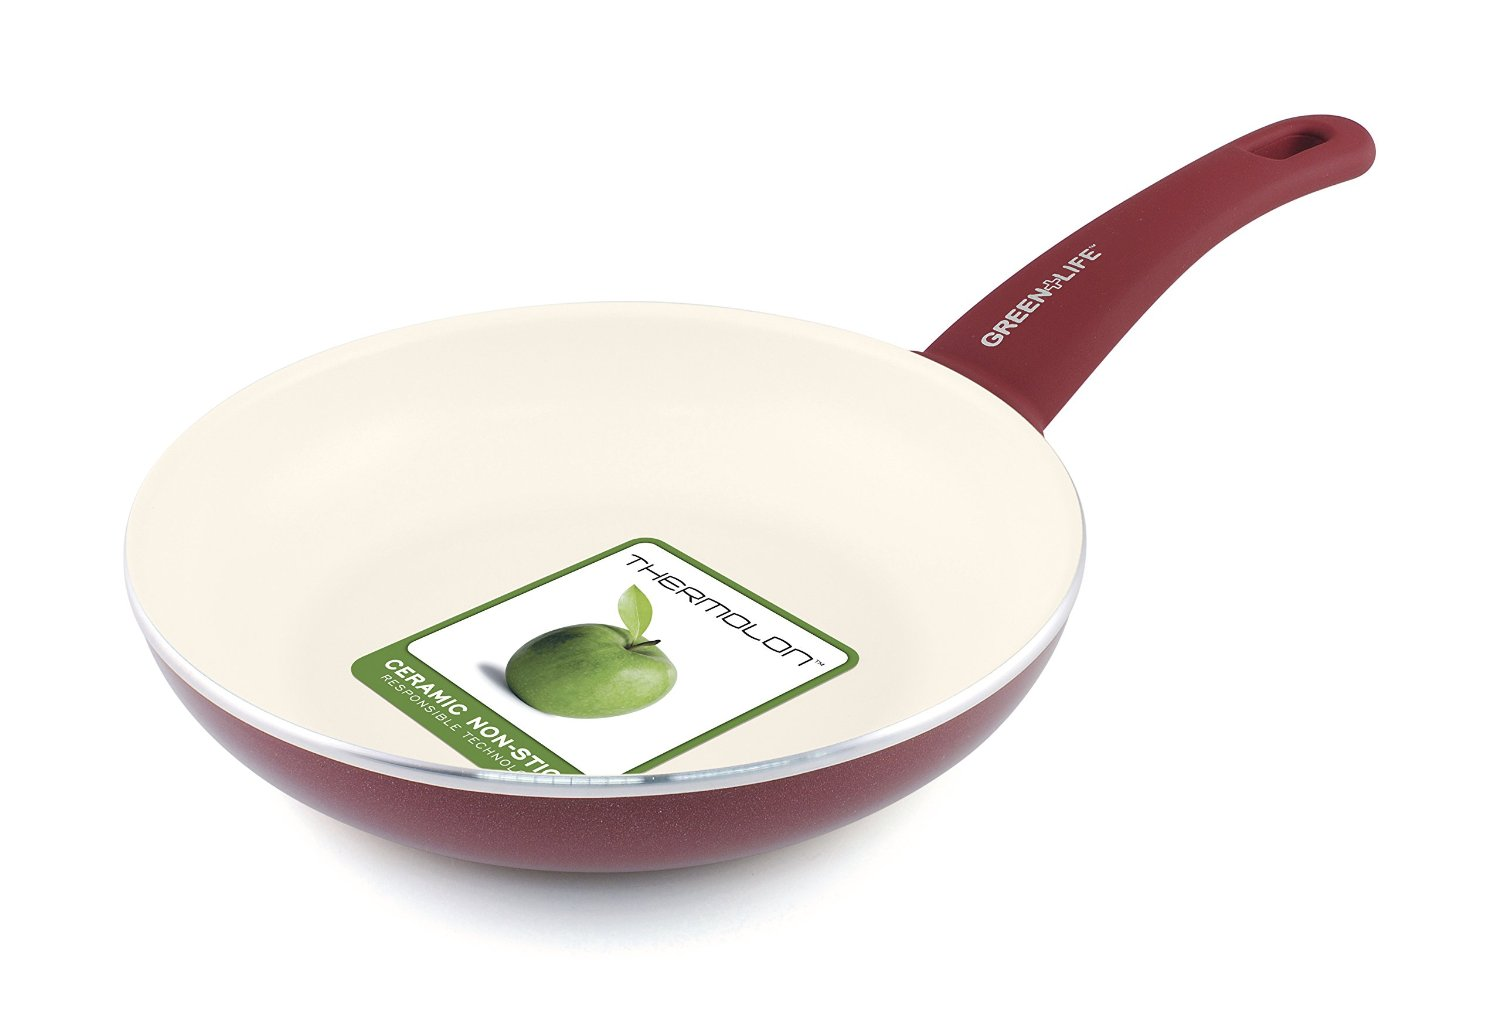 Greenpan Ceramic Non Stick Mini Round Egg Pan 5 Quot Grey